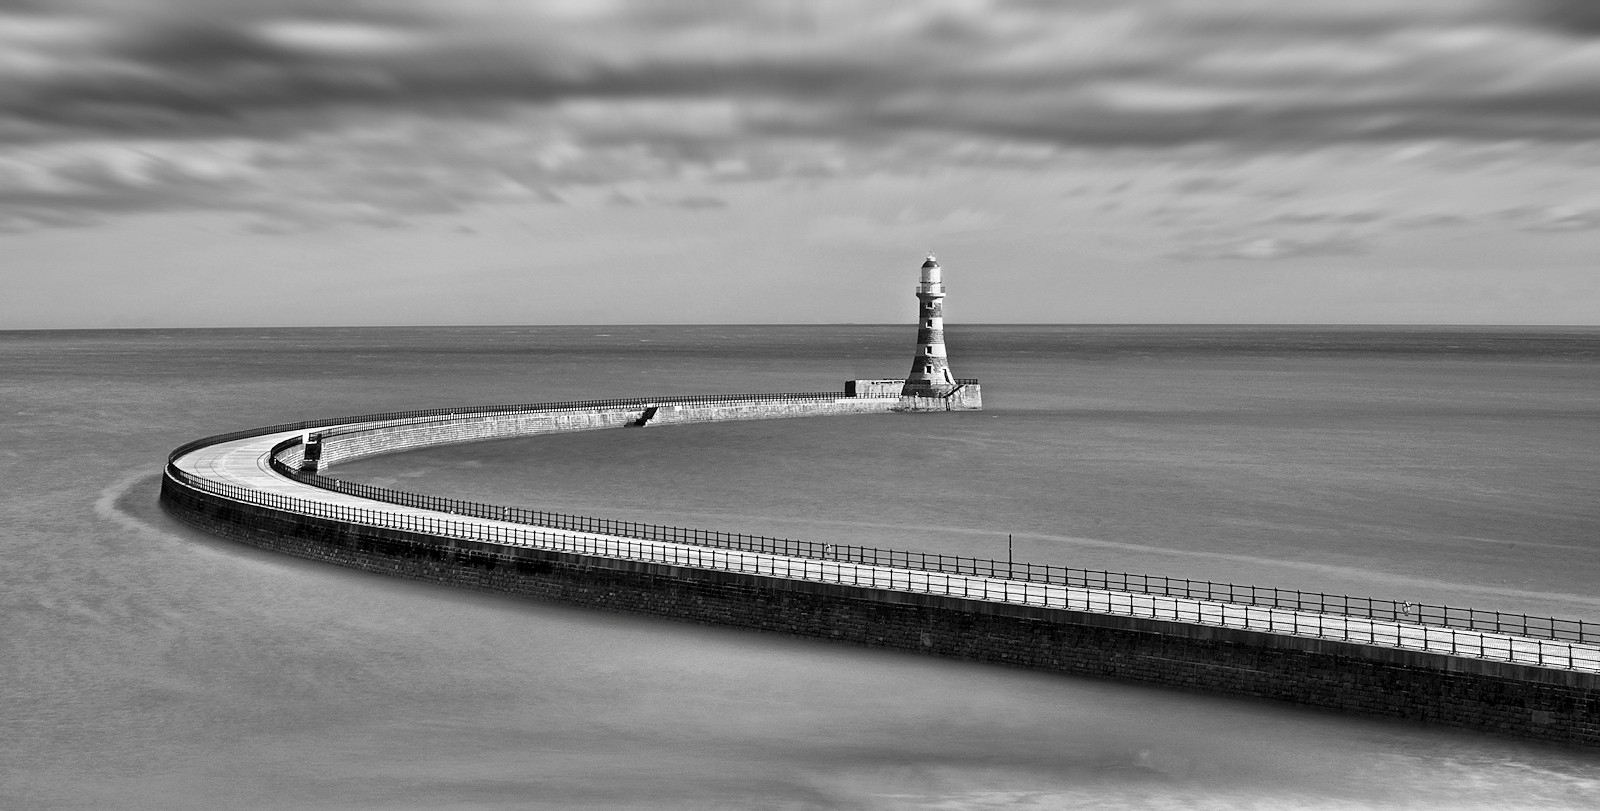 MONO - Roker Pier by Joe Beattie (11 marks)